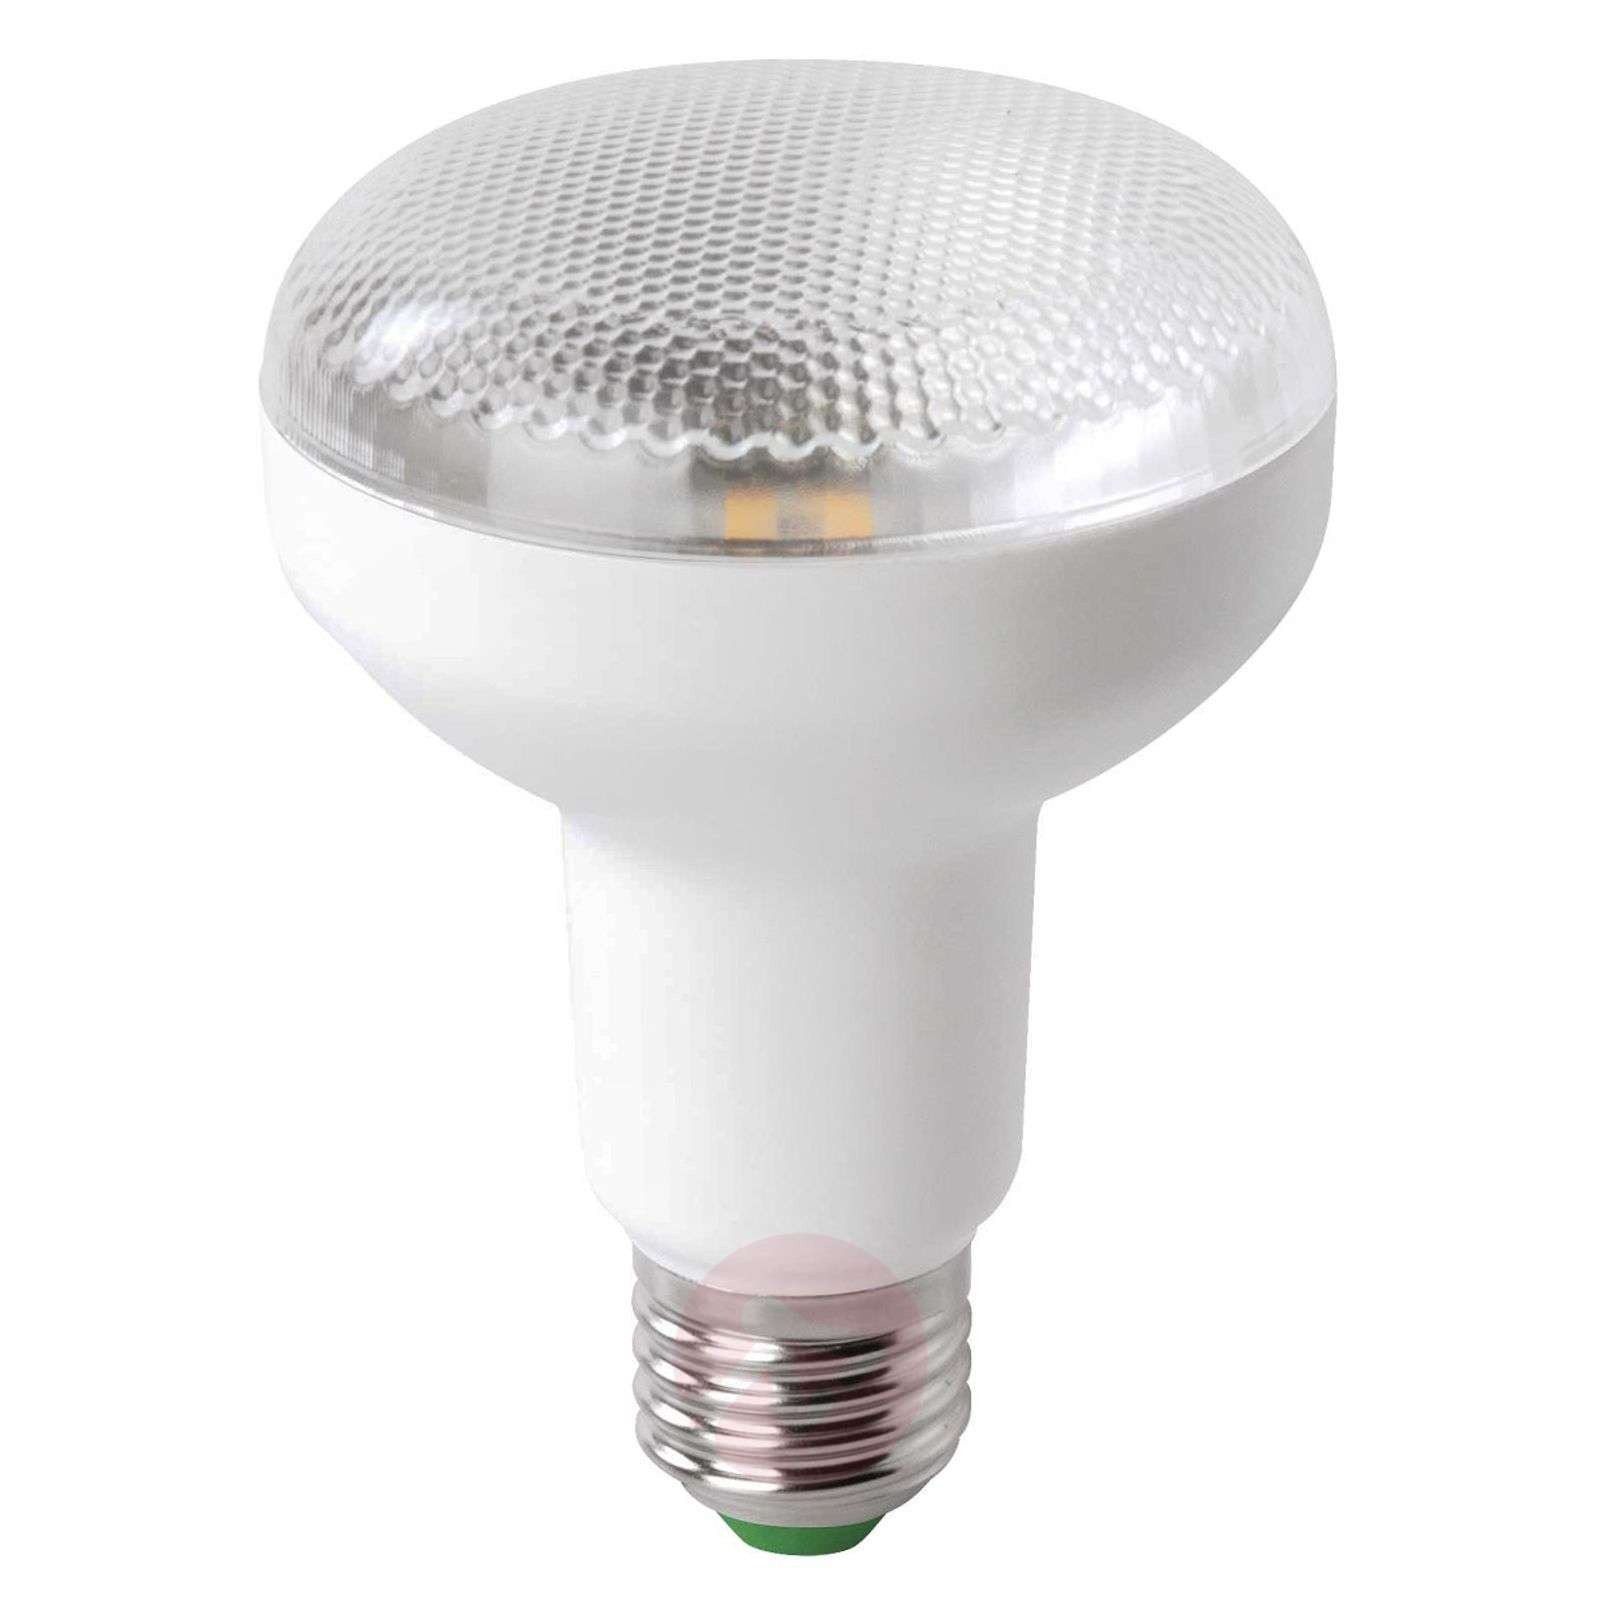 Ampoule LED à réflecteur E27 7W R80 90degree MEGAMAN-6530184-01